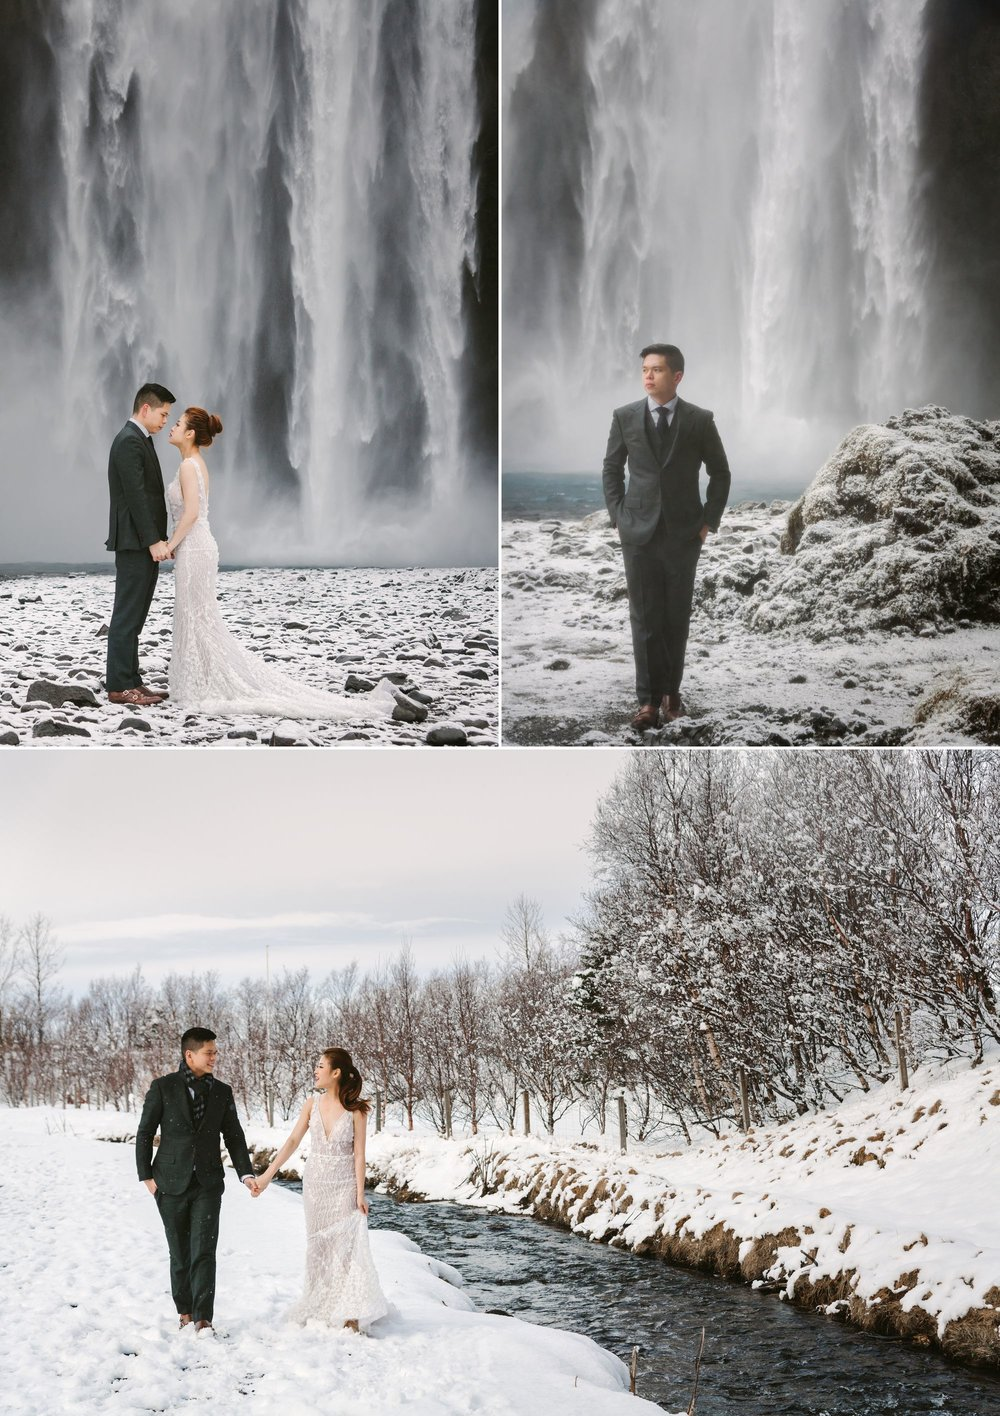 iceland_prewedding_photography 2.jpg